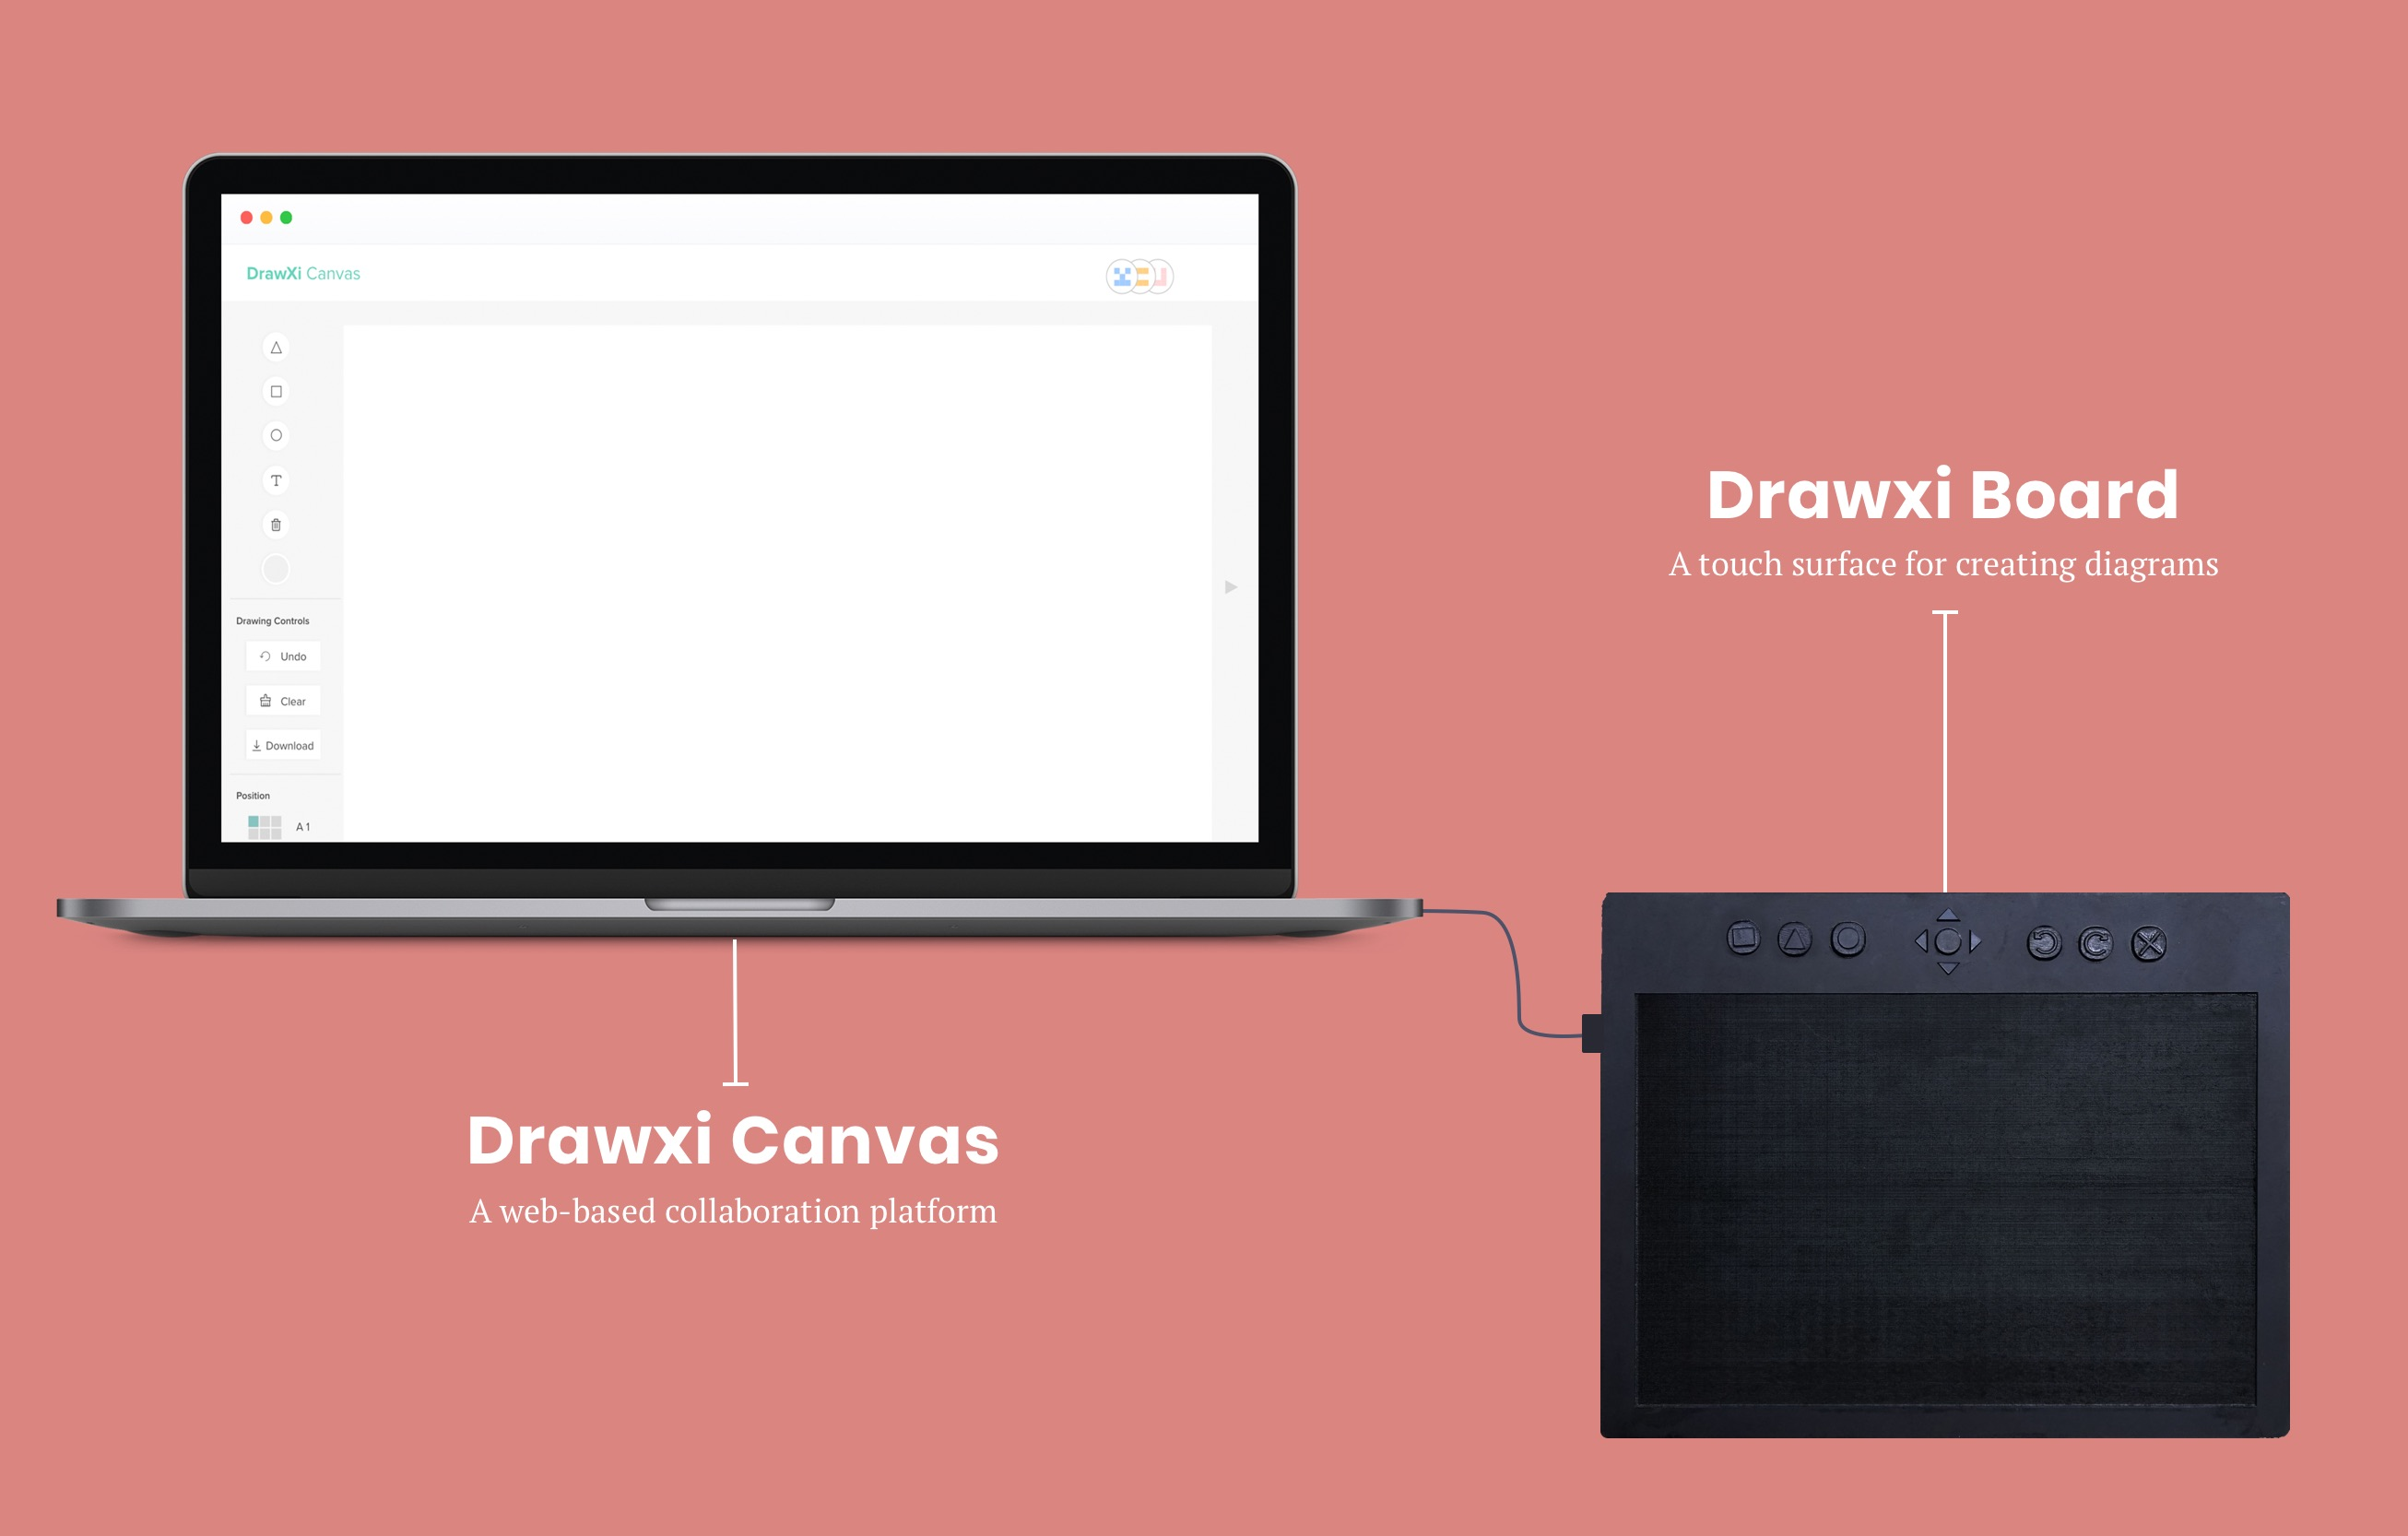 Image showing Drawxi Board and Drawxi Canvas. Final concepts presented at CHI 2019.